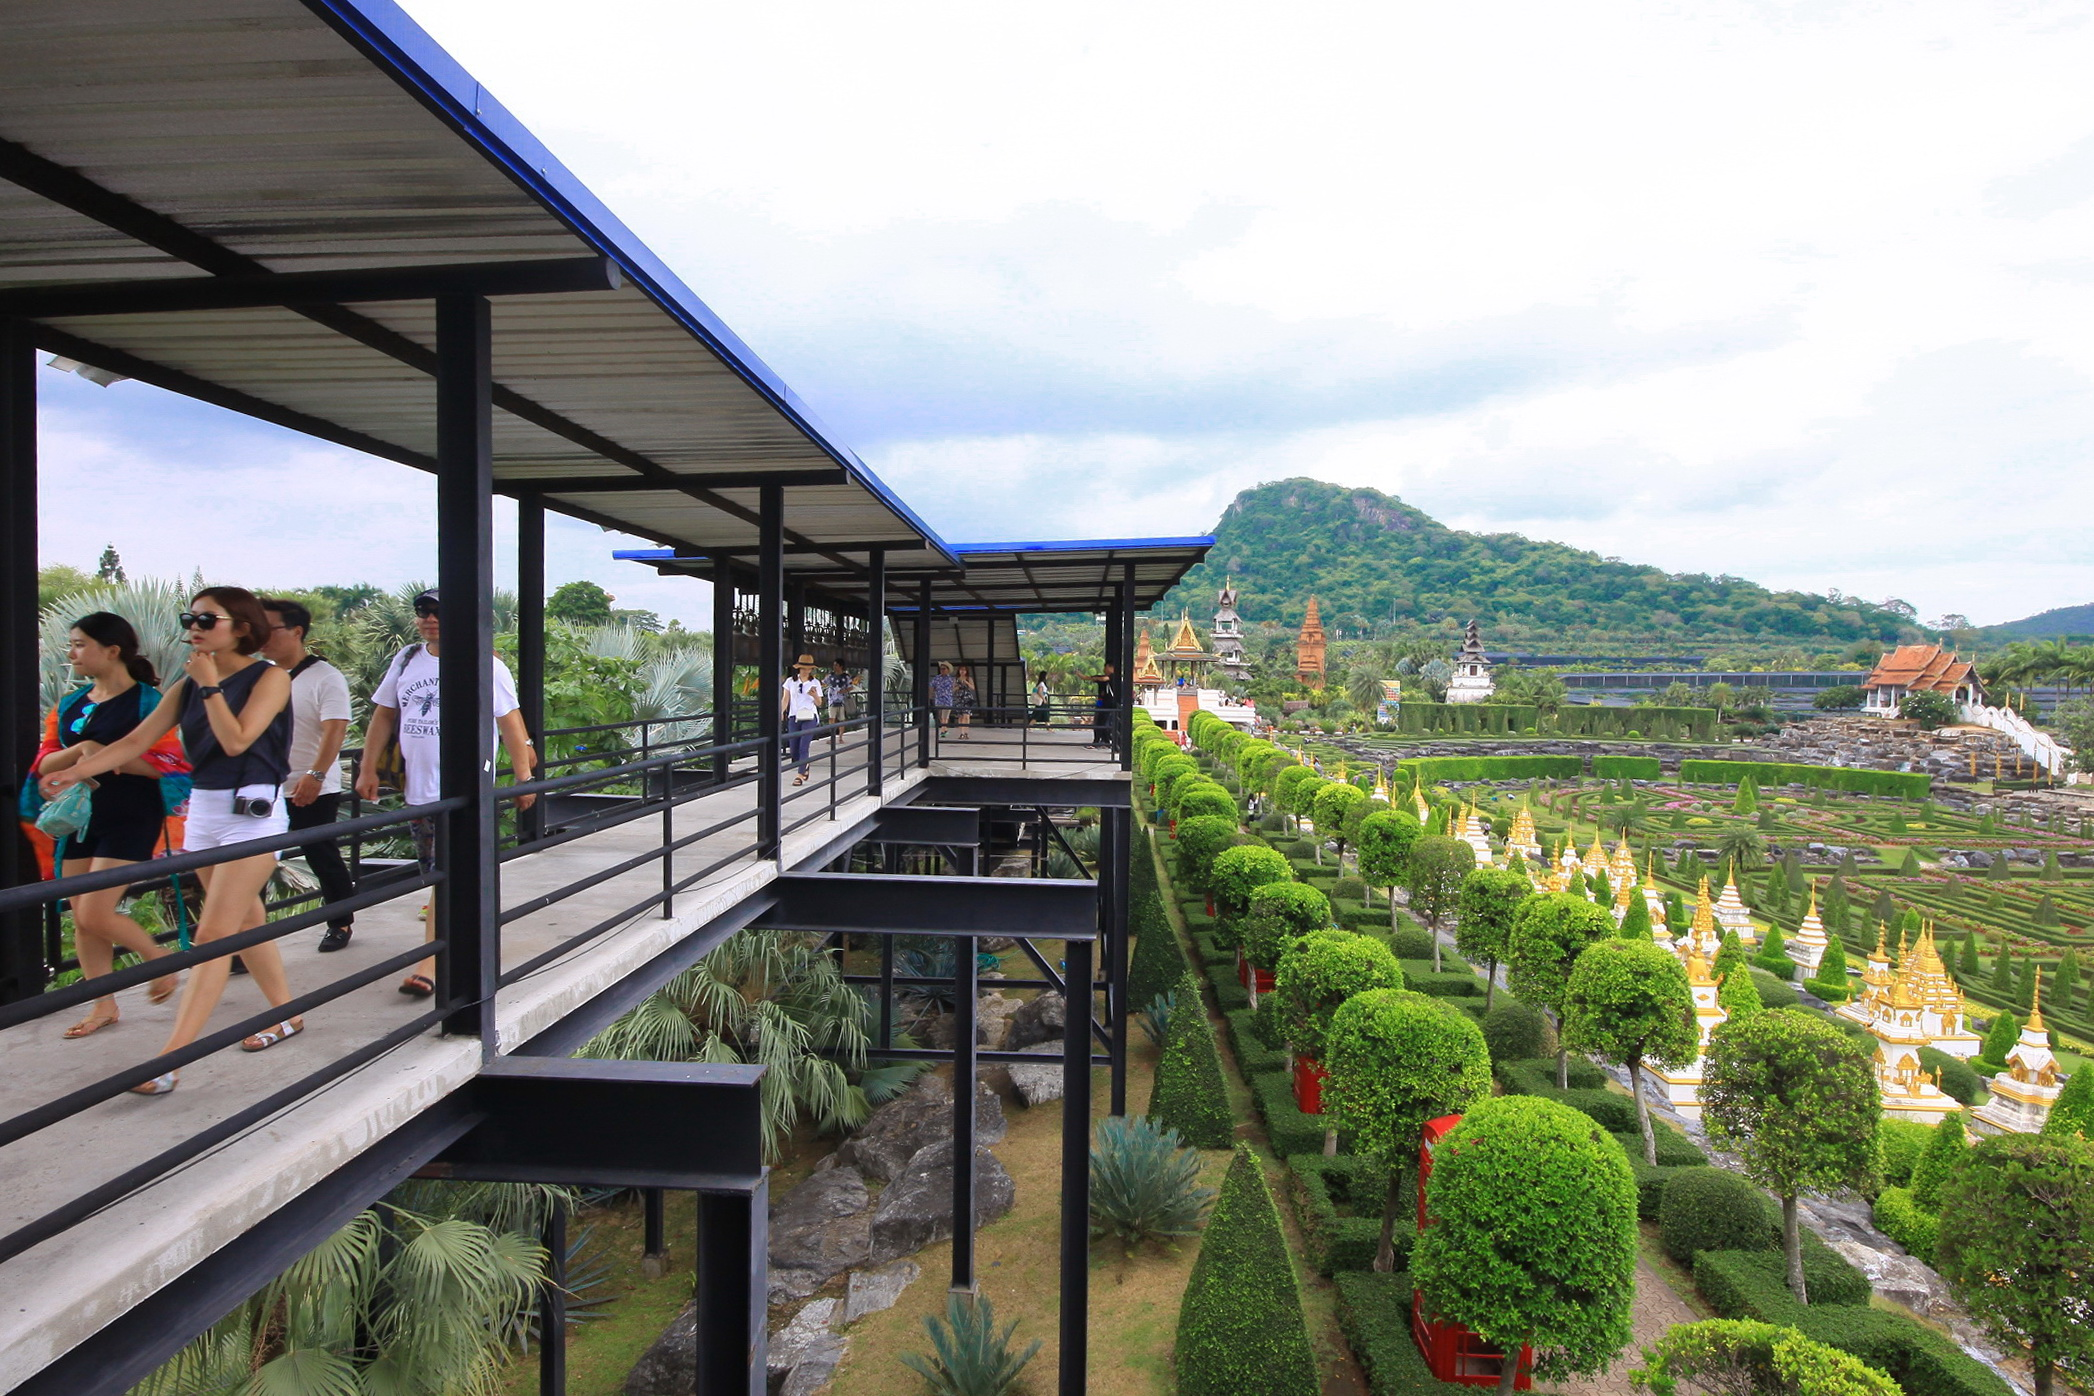 Nong Nooch Tropical Garden & Resort Pattaya